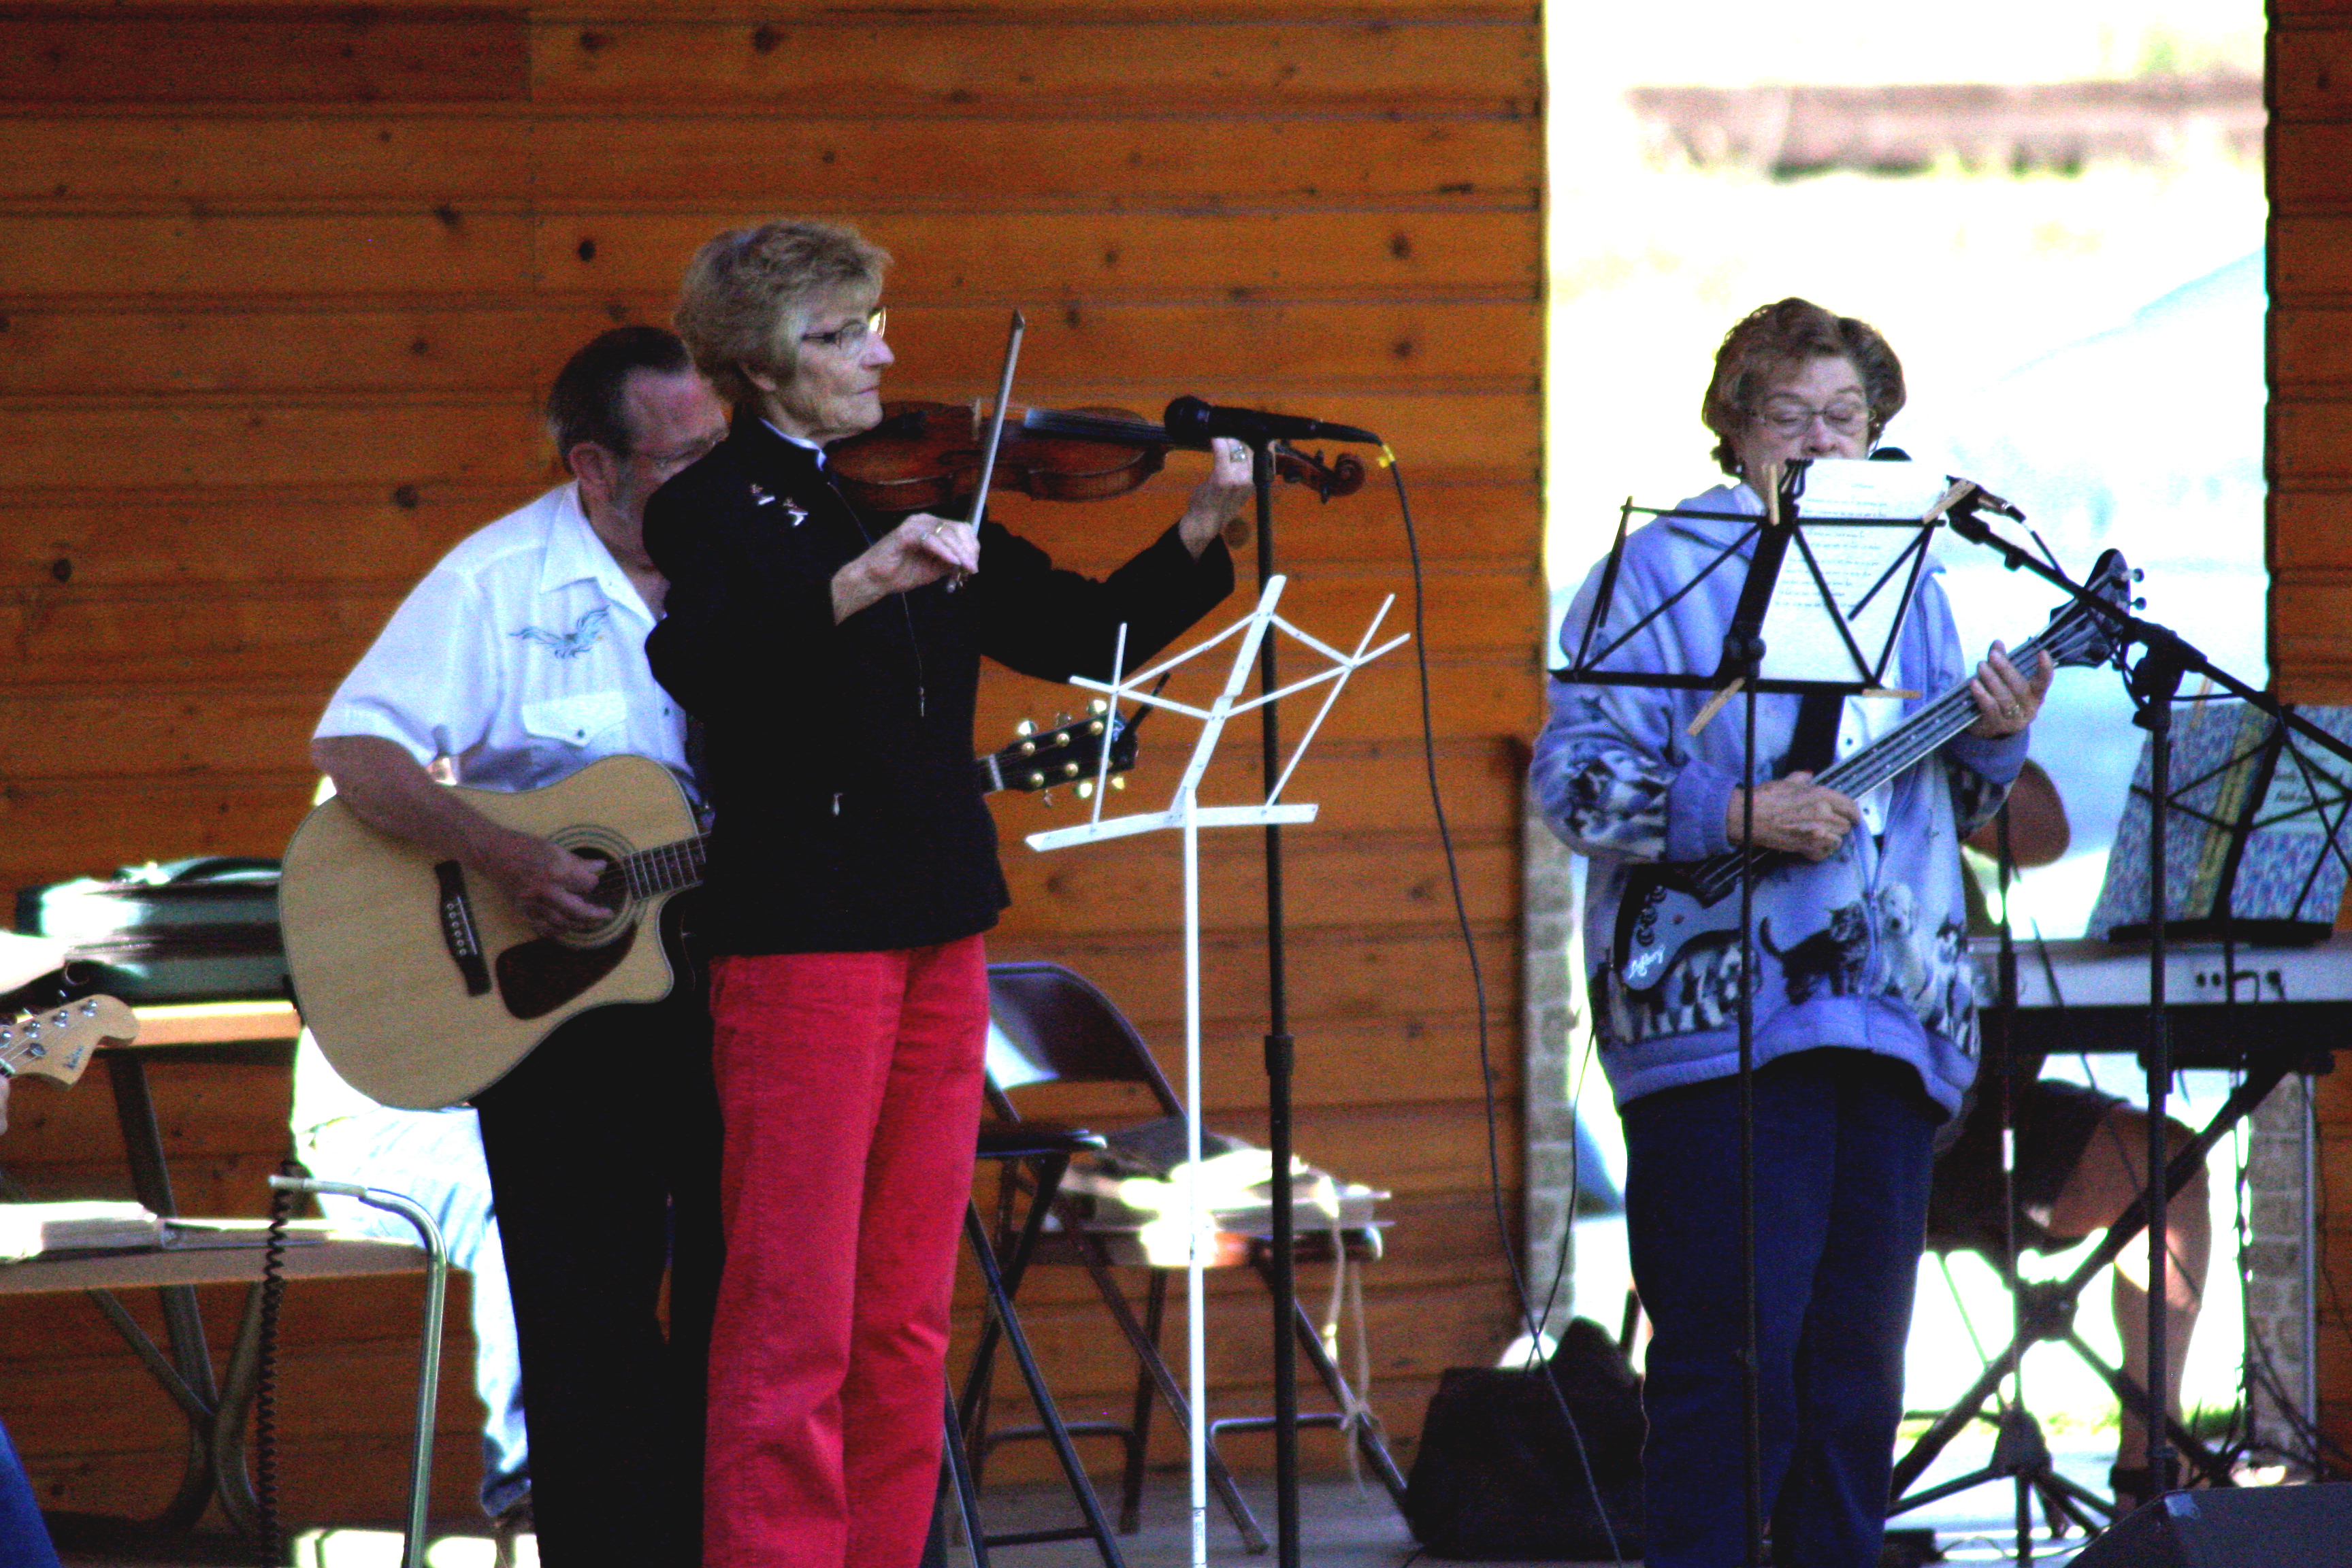 Calling all Craigmont musicians: Jam'n in the Park acts as open mic night for city park